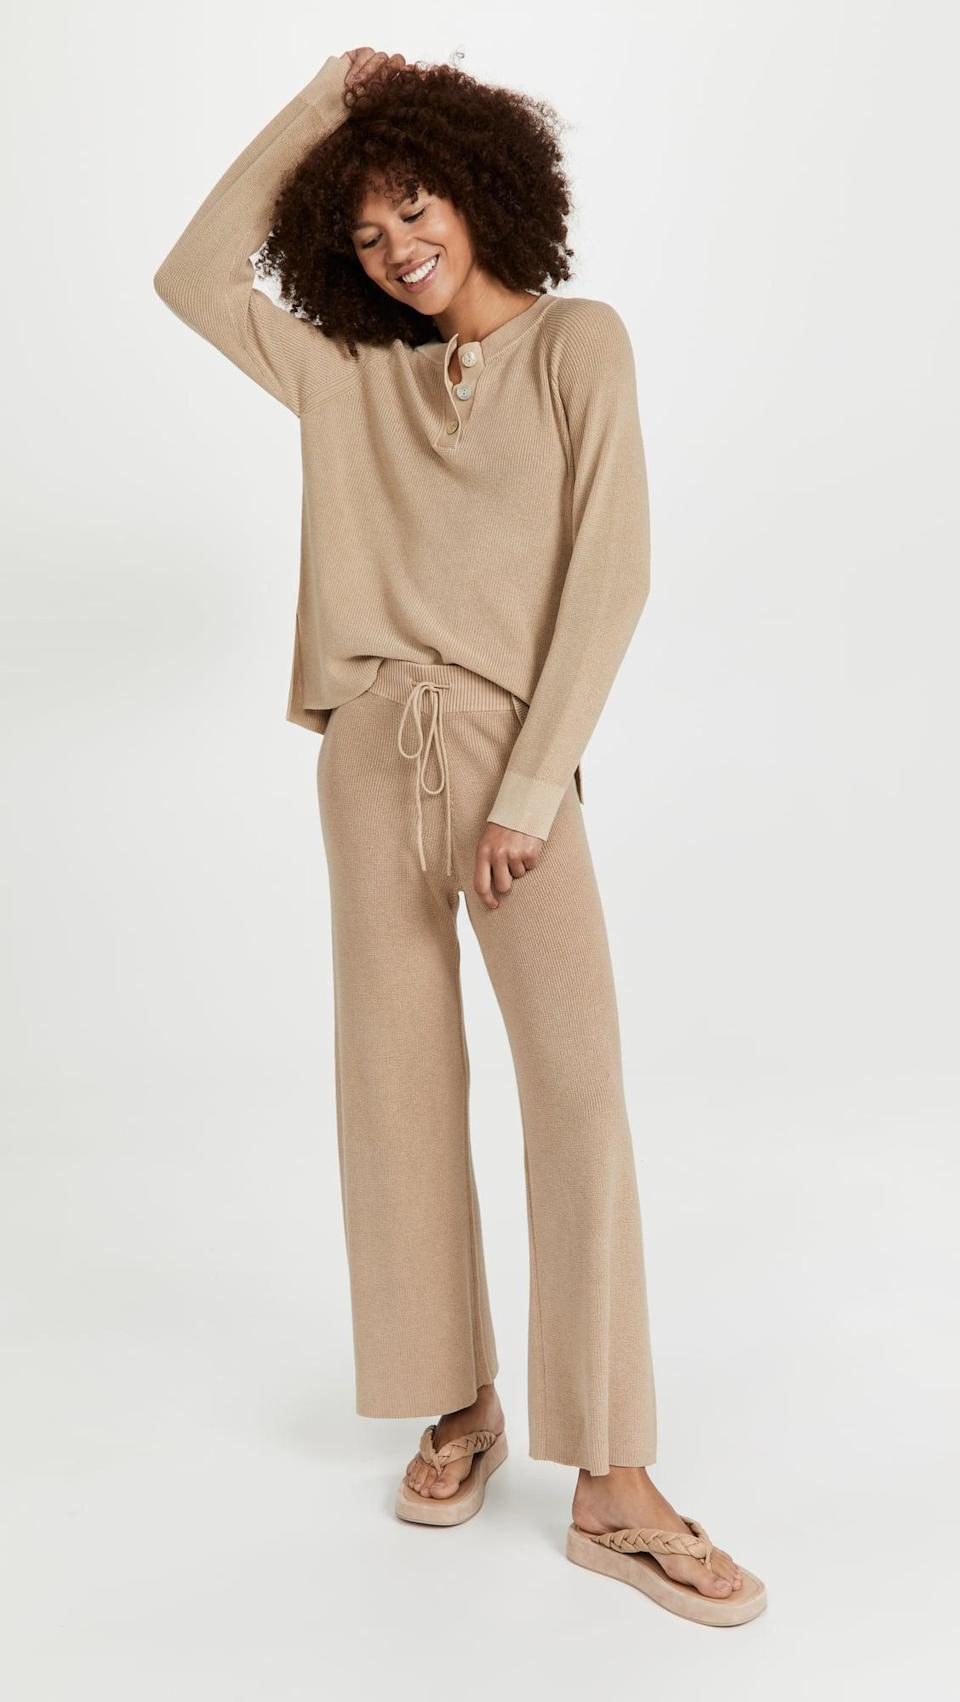 <p>We're not giving up our matching sets yet. This <span>Rails Piper Pullover</span> ($168) and <span>Brooks Sweatpants</span> ($168) is adorable.</p>